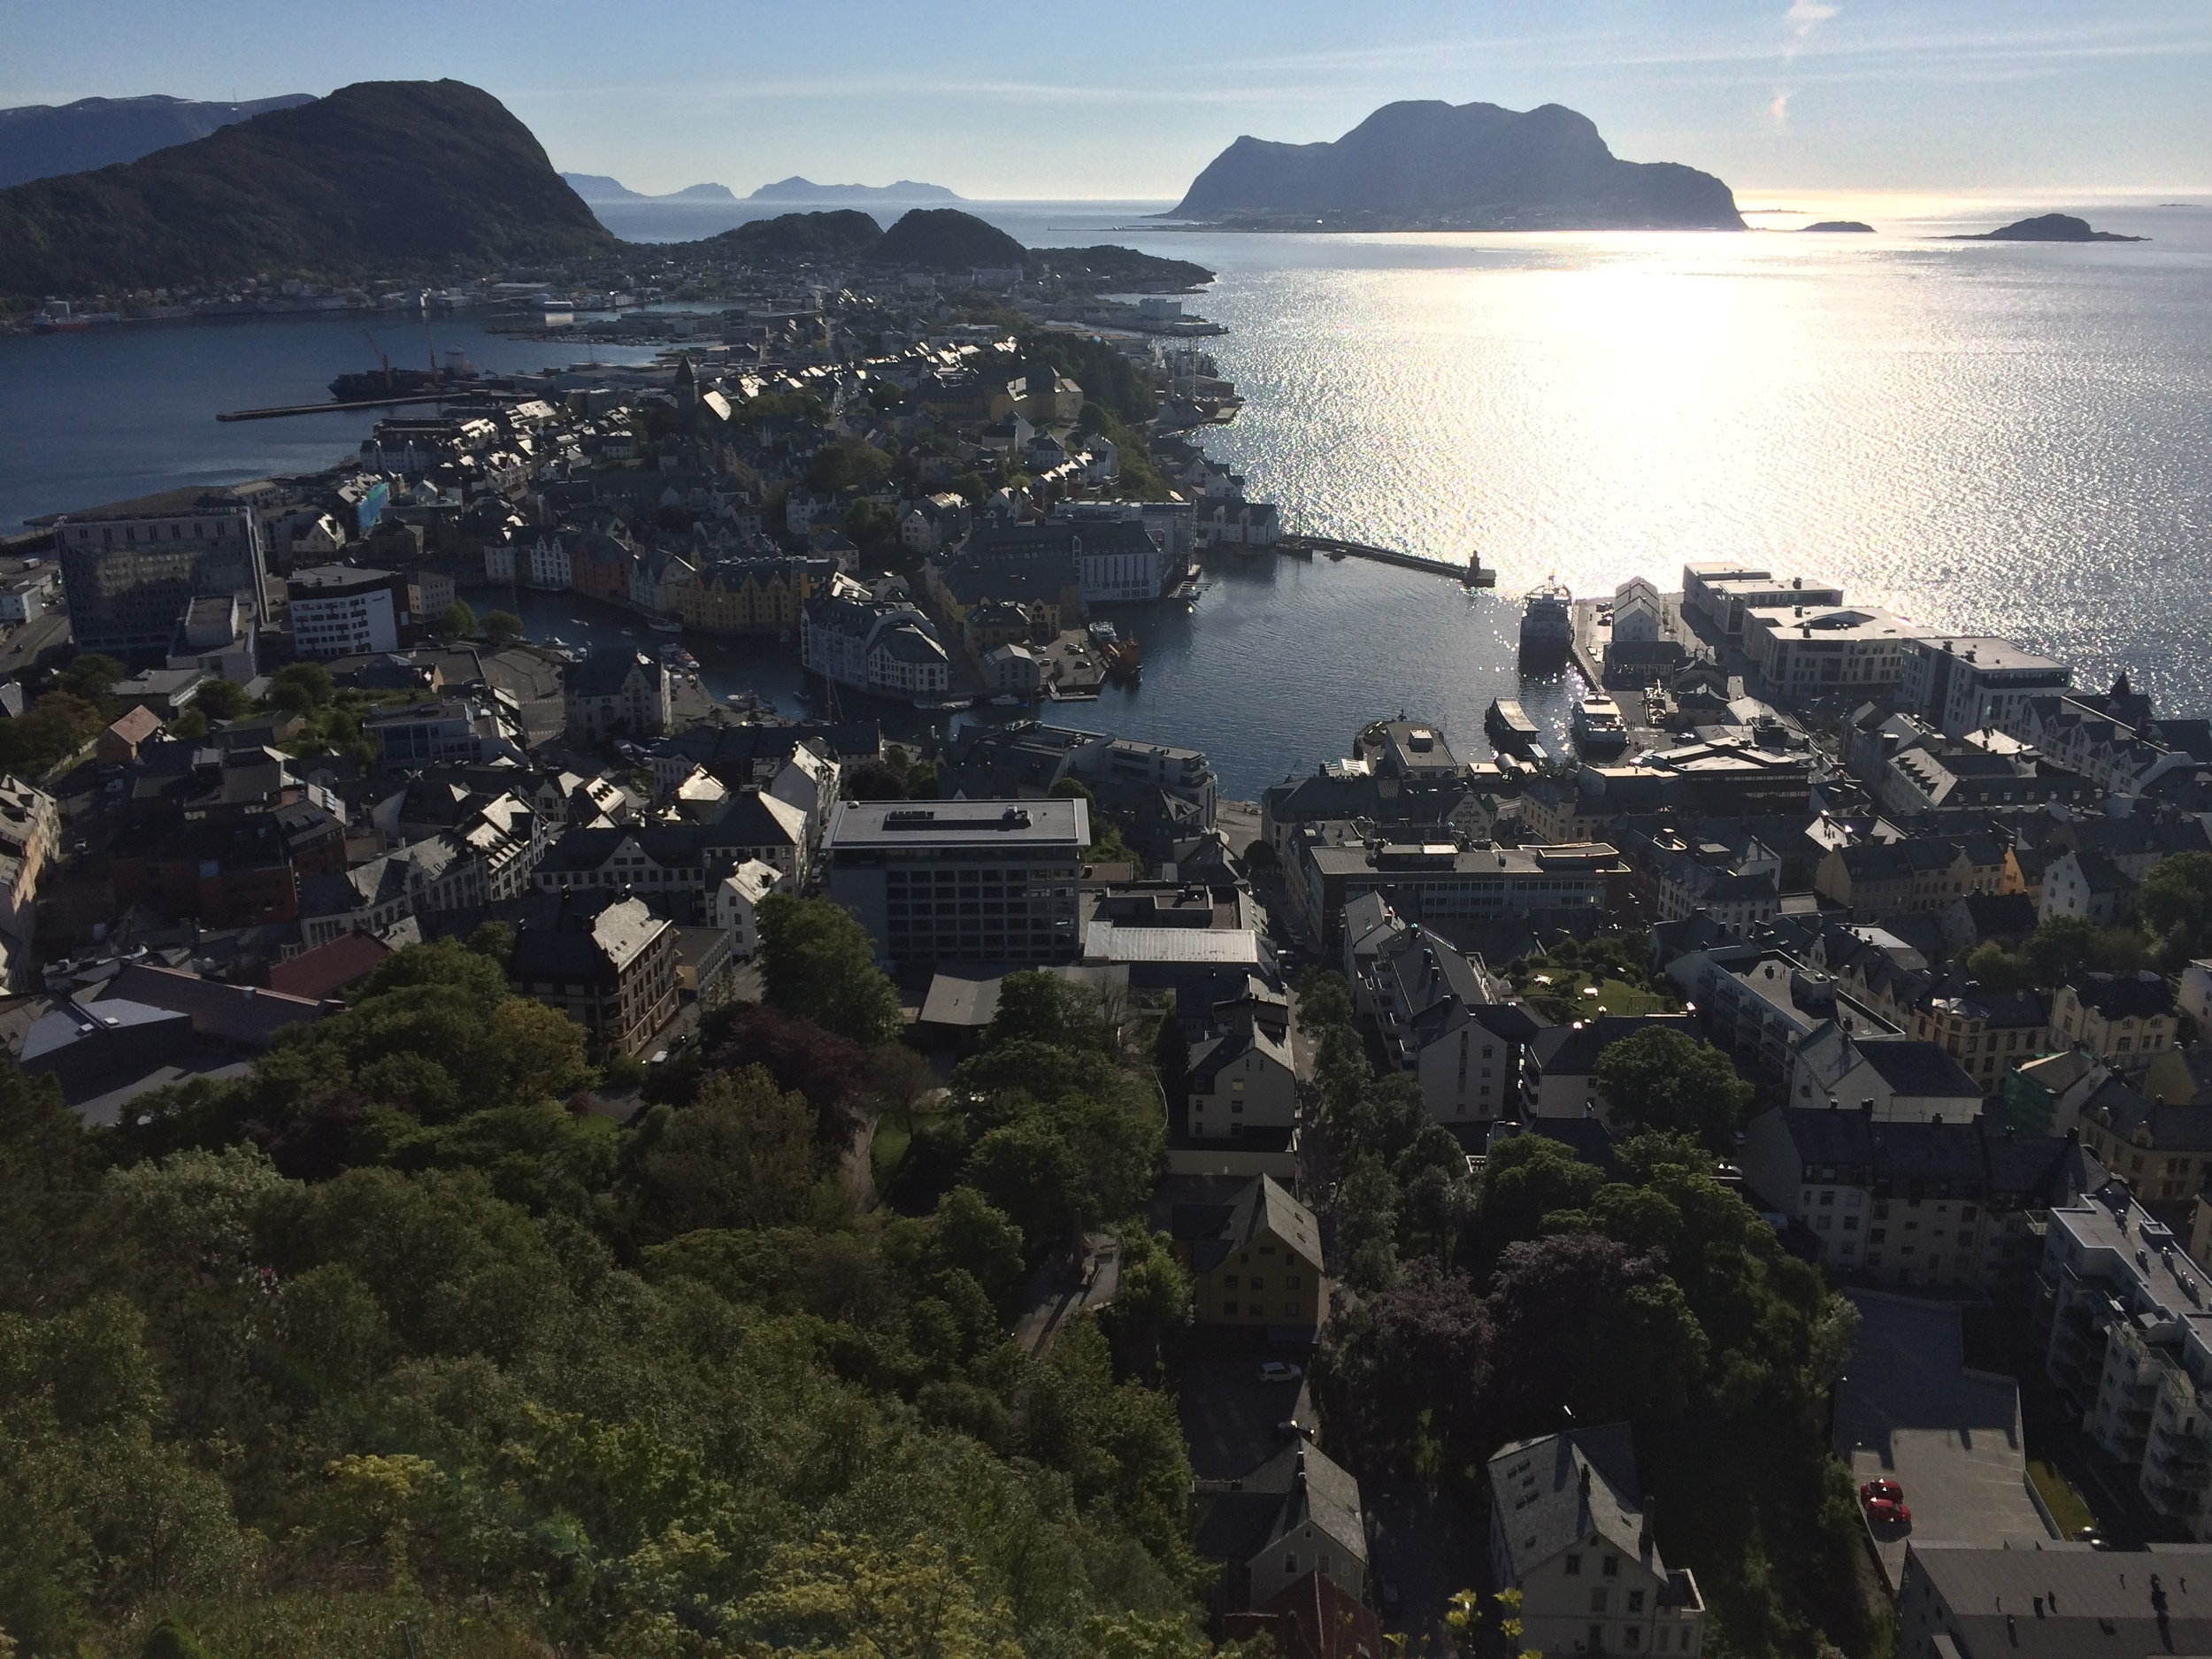 I didn't take any Tesla pictures, but here's a picture of Ålesund, the second-largest town in Møre og Romsdal which connects to nearby islands via tunnels and ferries. It's on the coast to the point that it's practically in the water.